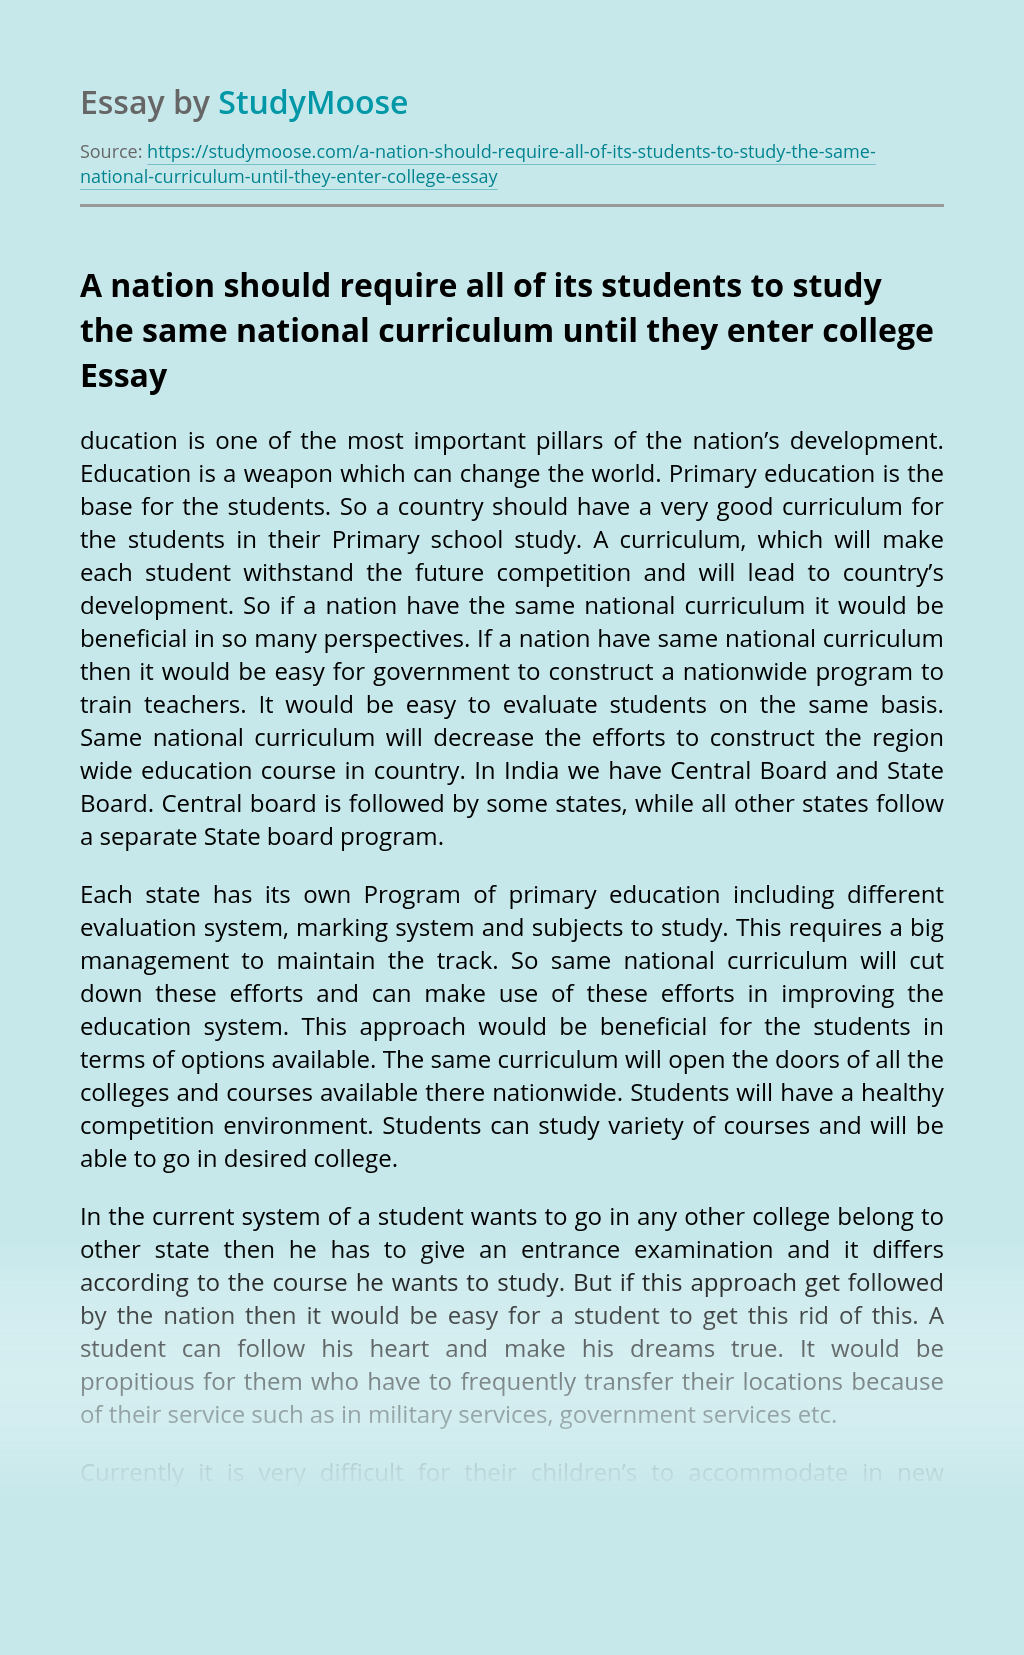 A nation should require all of its students to study the same national curriculum until they enter college